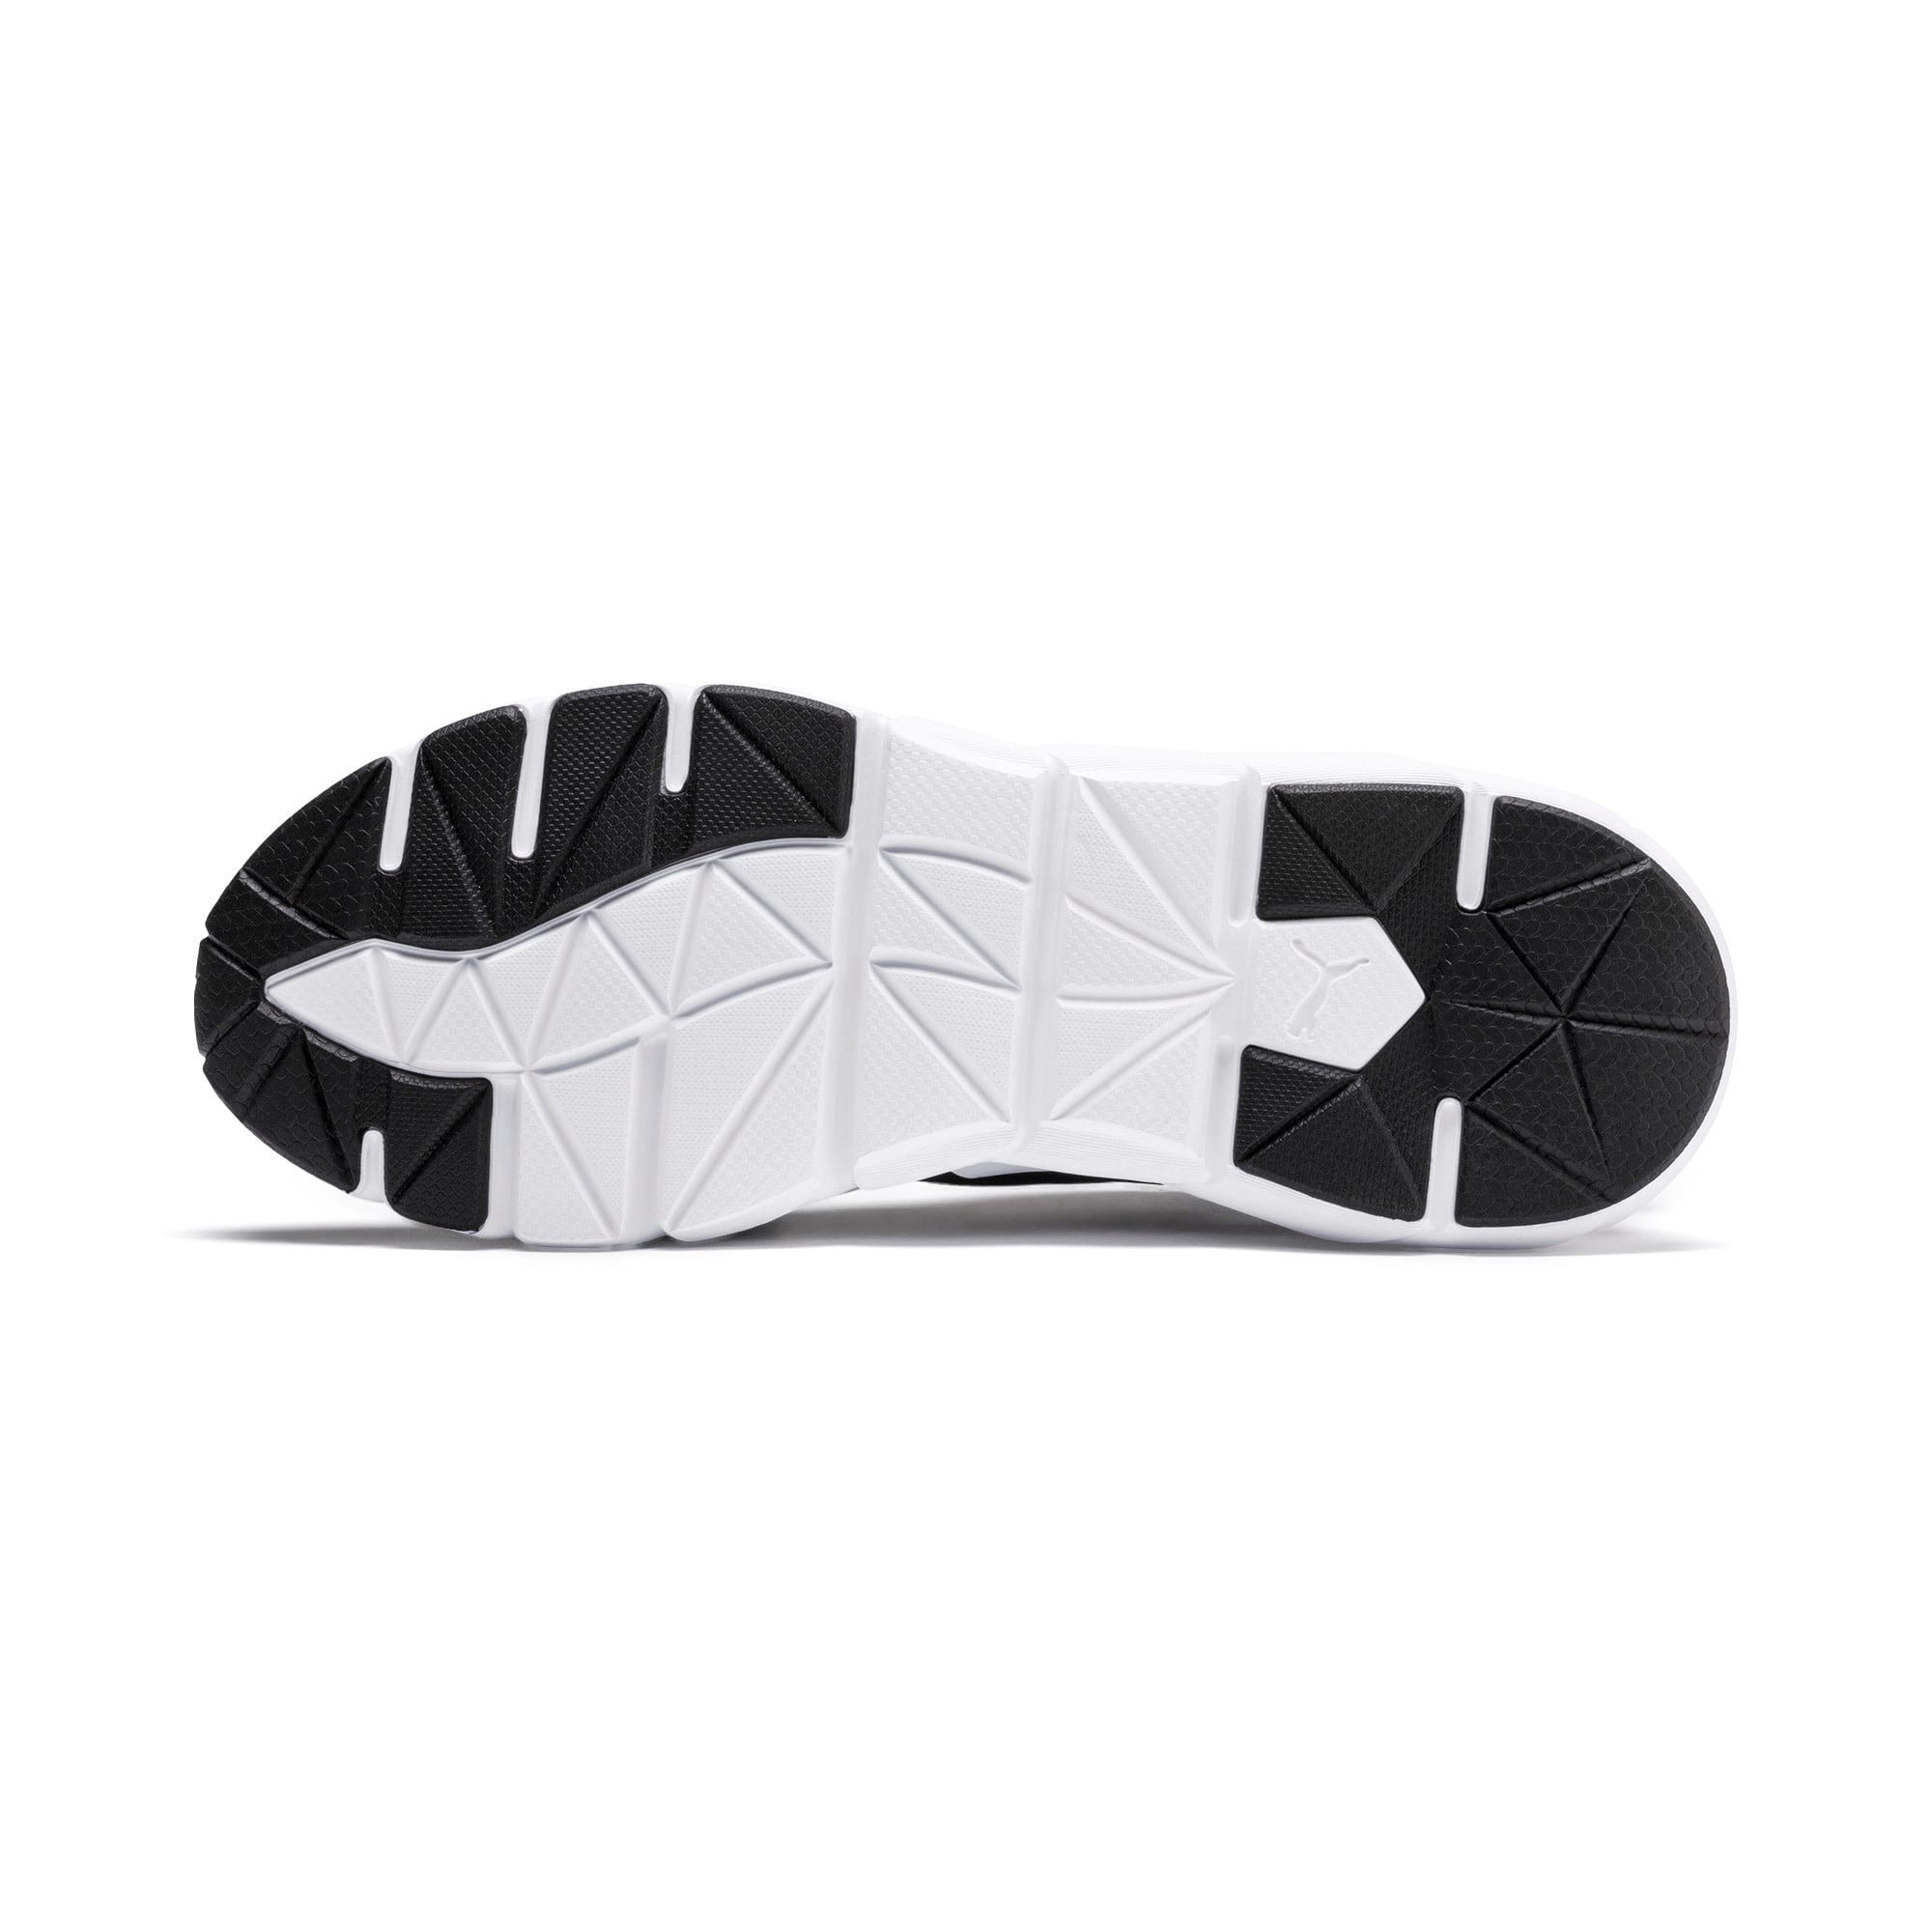 Thumbnail 4 of Weave XT Youth Trainers, Black-White-Calypso Coral, medium-IND